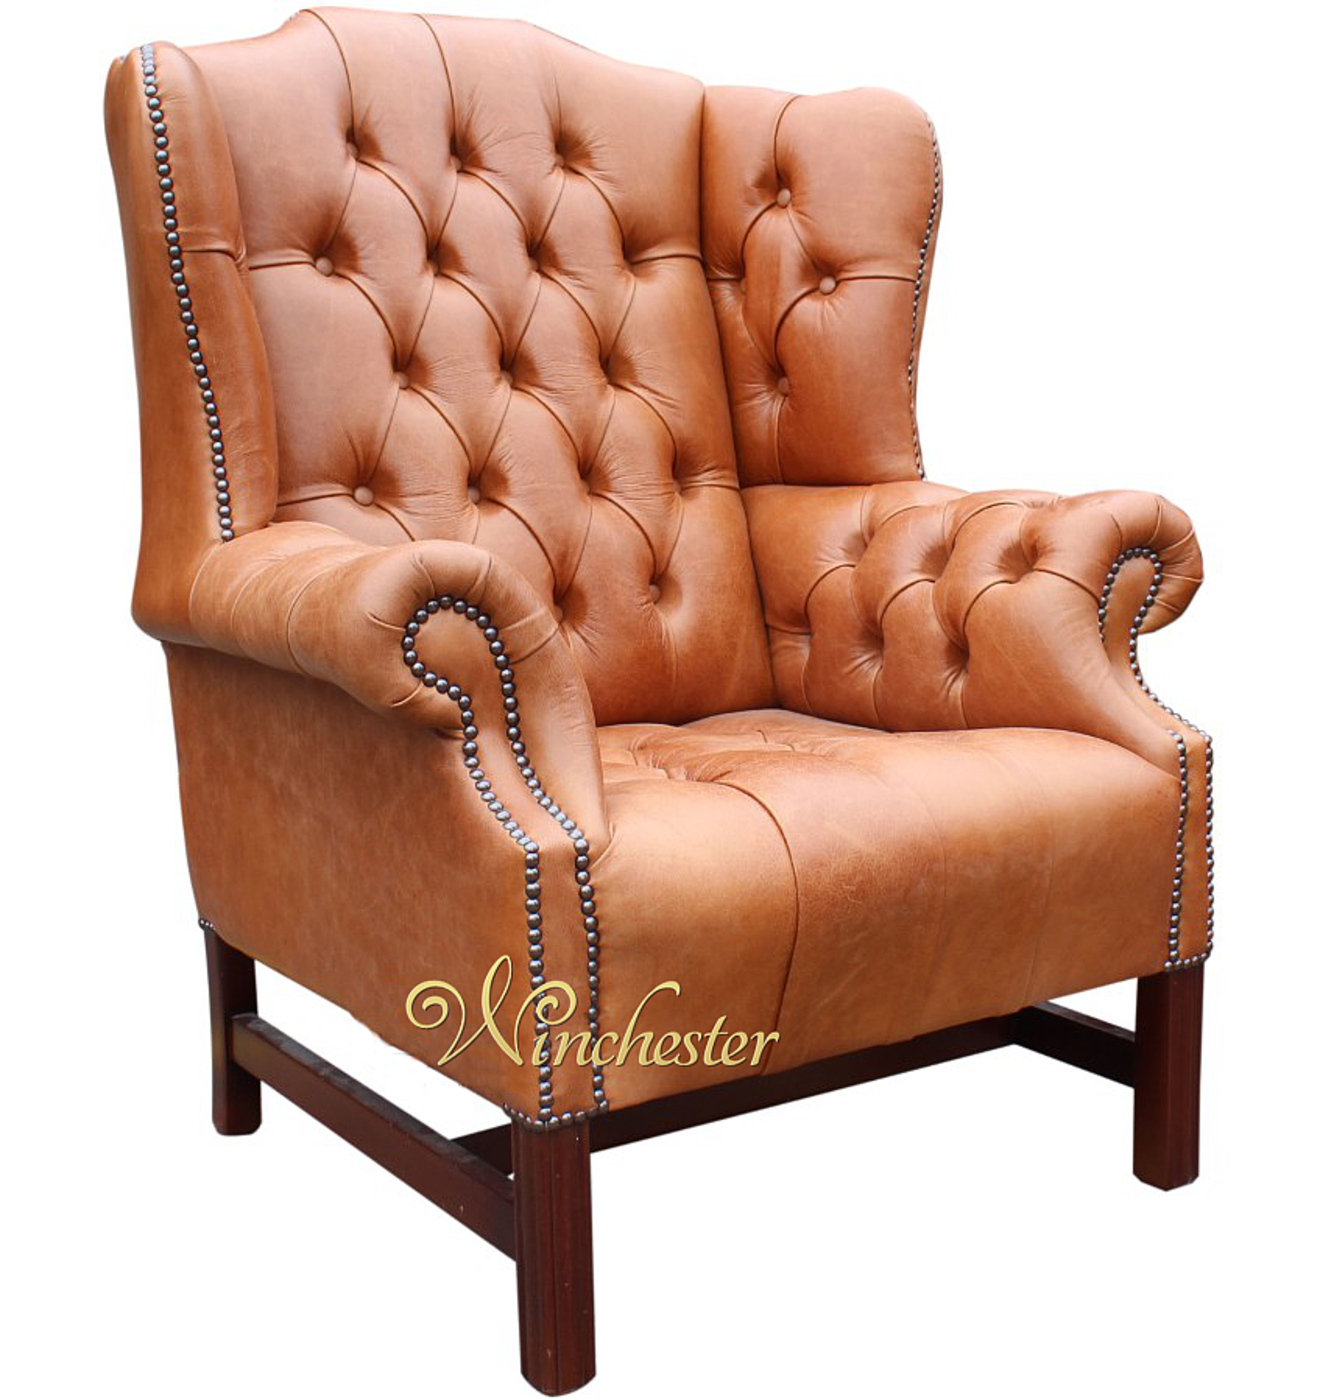 Chesterfield Chrchill High Back Wing Chair Old English Tan Leather Wc